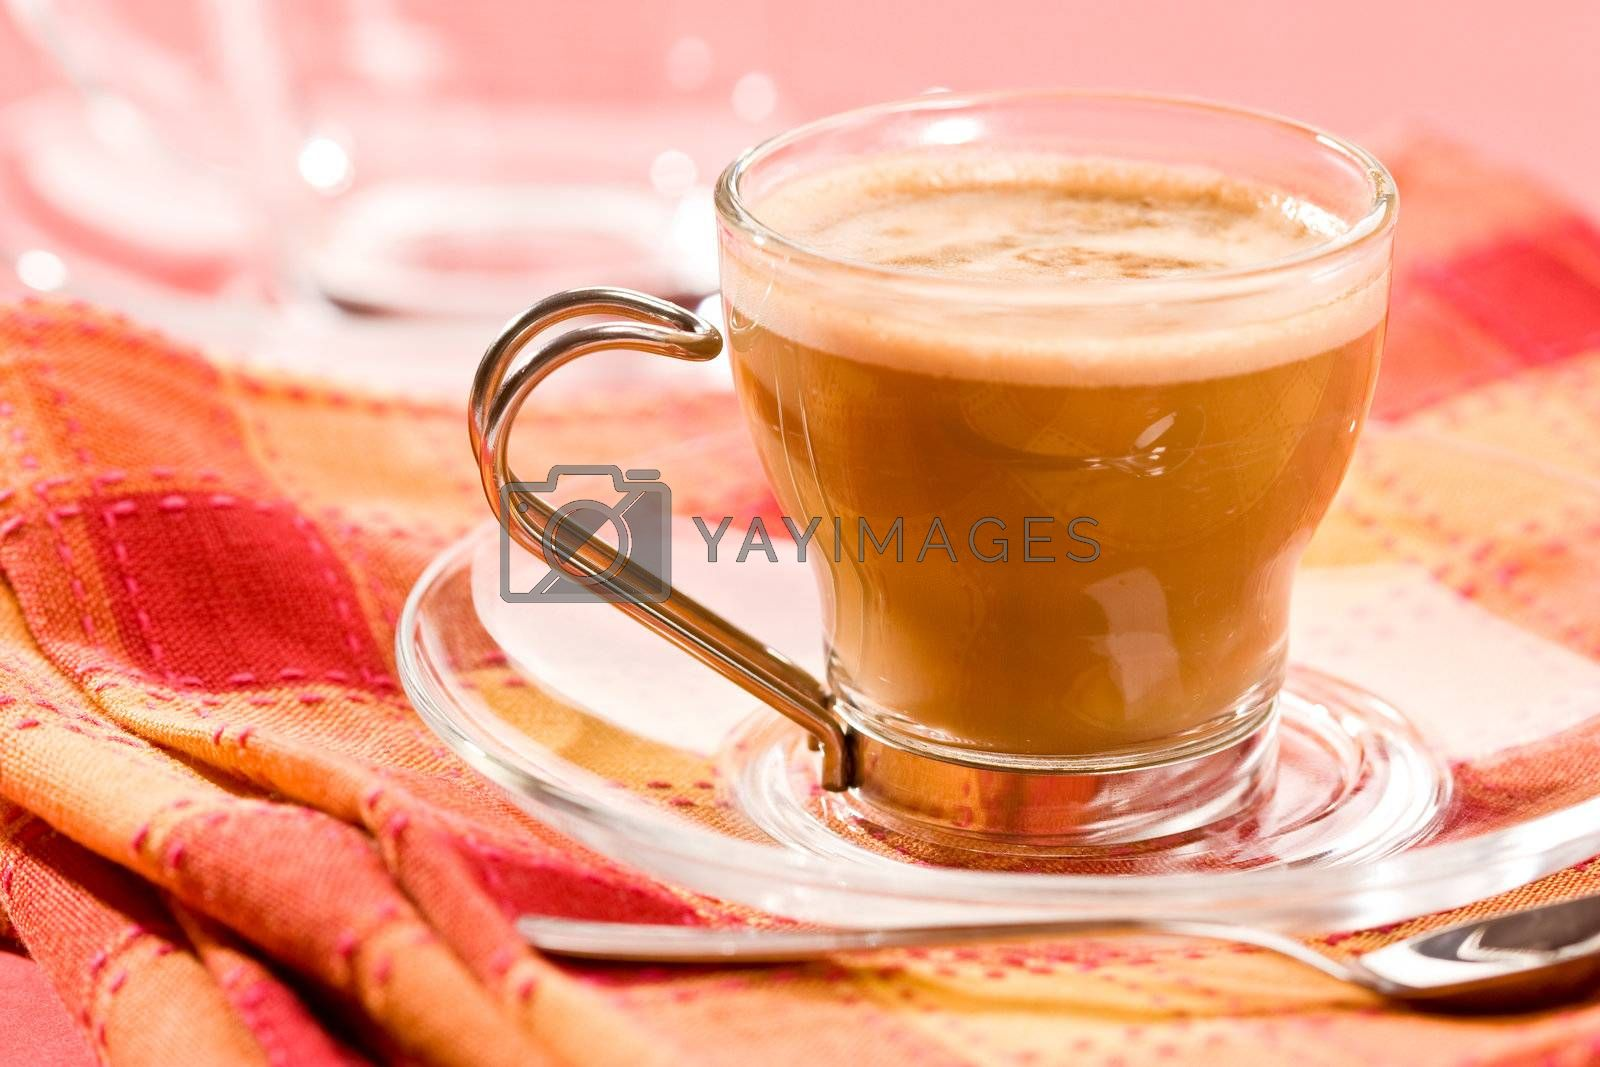 Royalty free image of cappuccino by agg